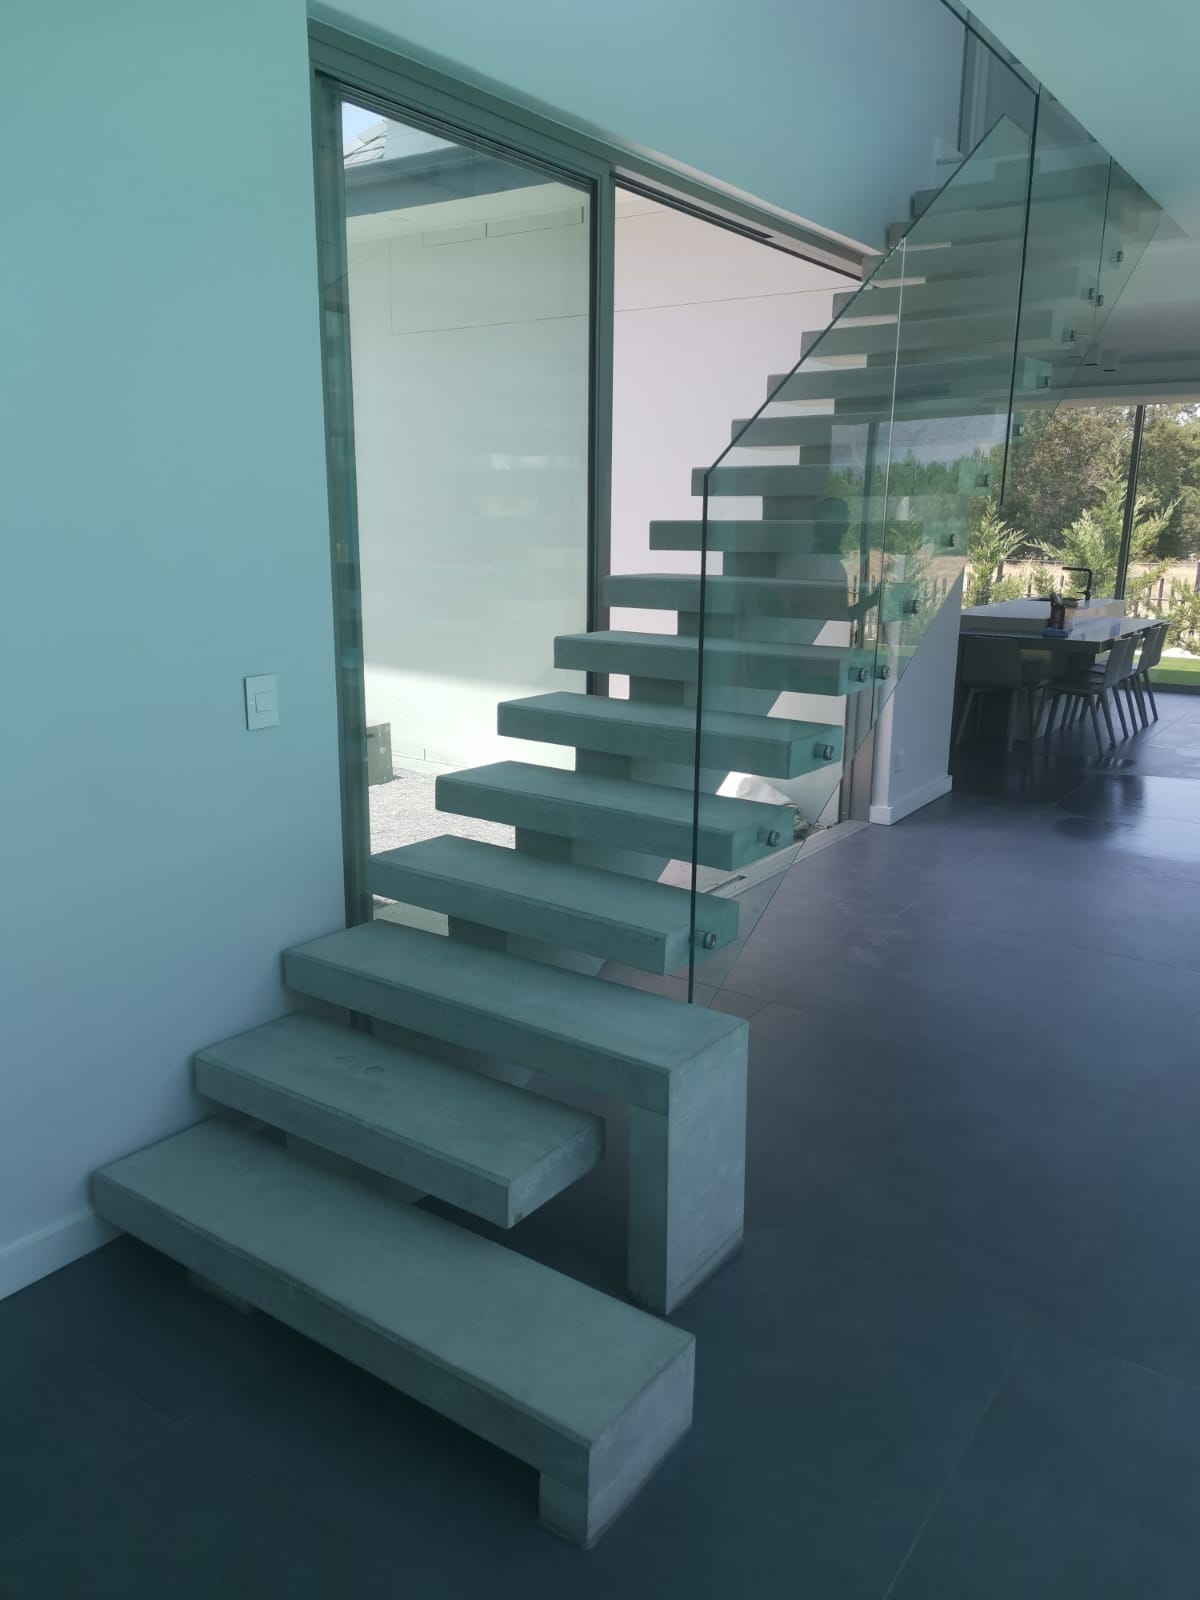 3. QUICK-STEP Floating Staircase